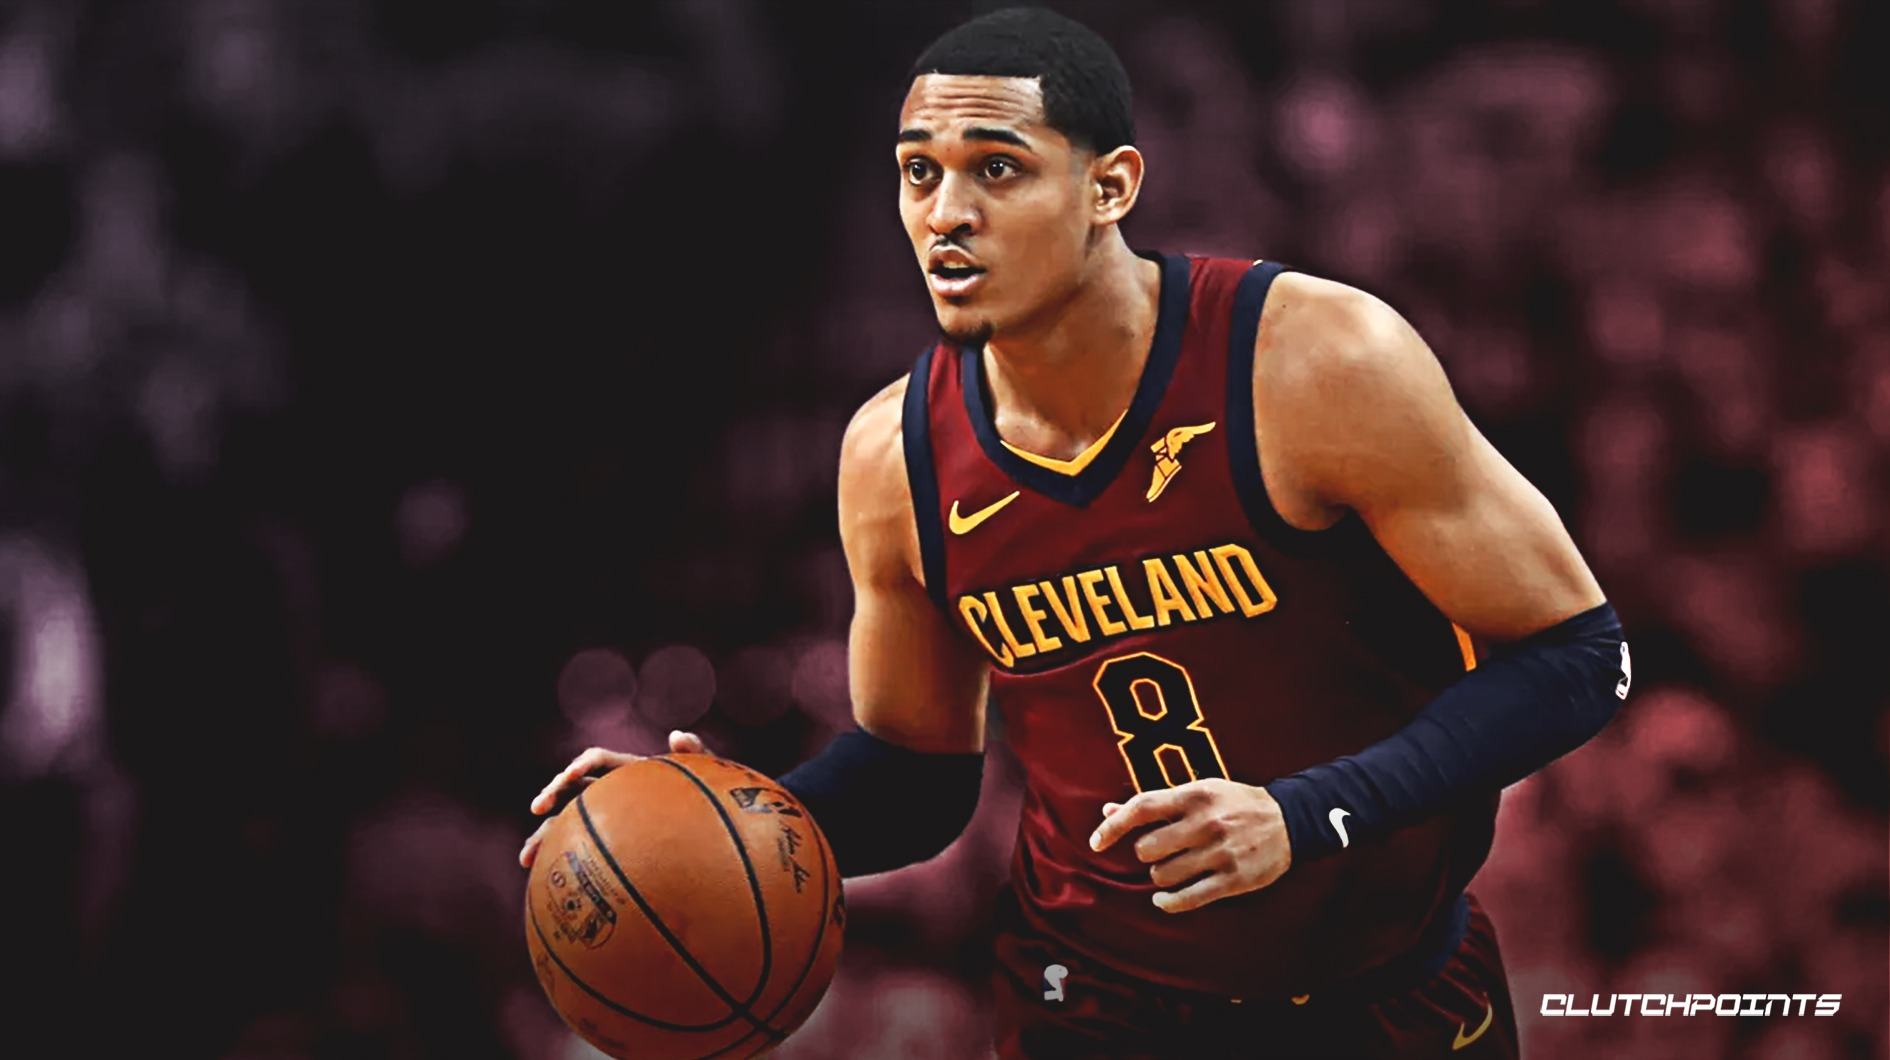 Jordan Clarkson will not play for Philippines in FIBA World Cup